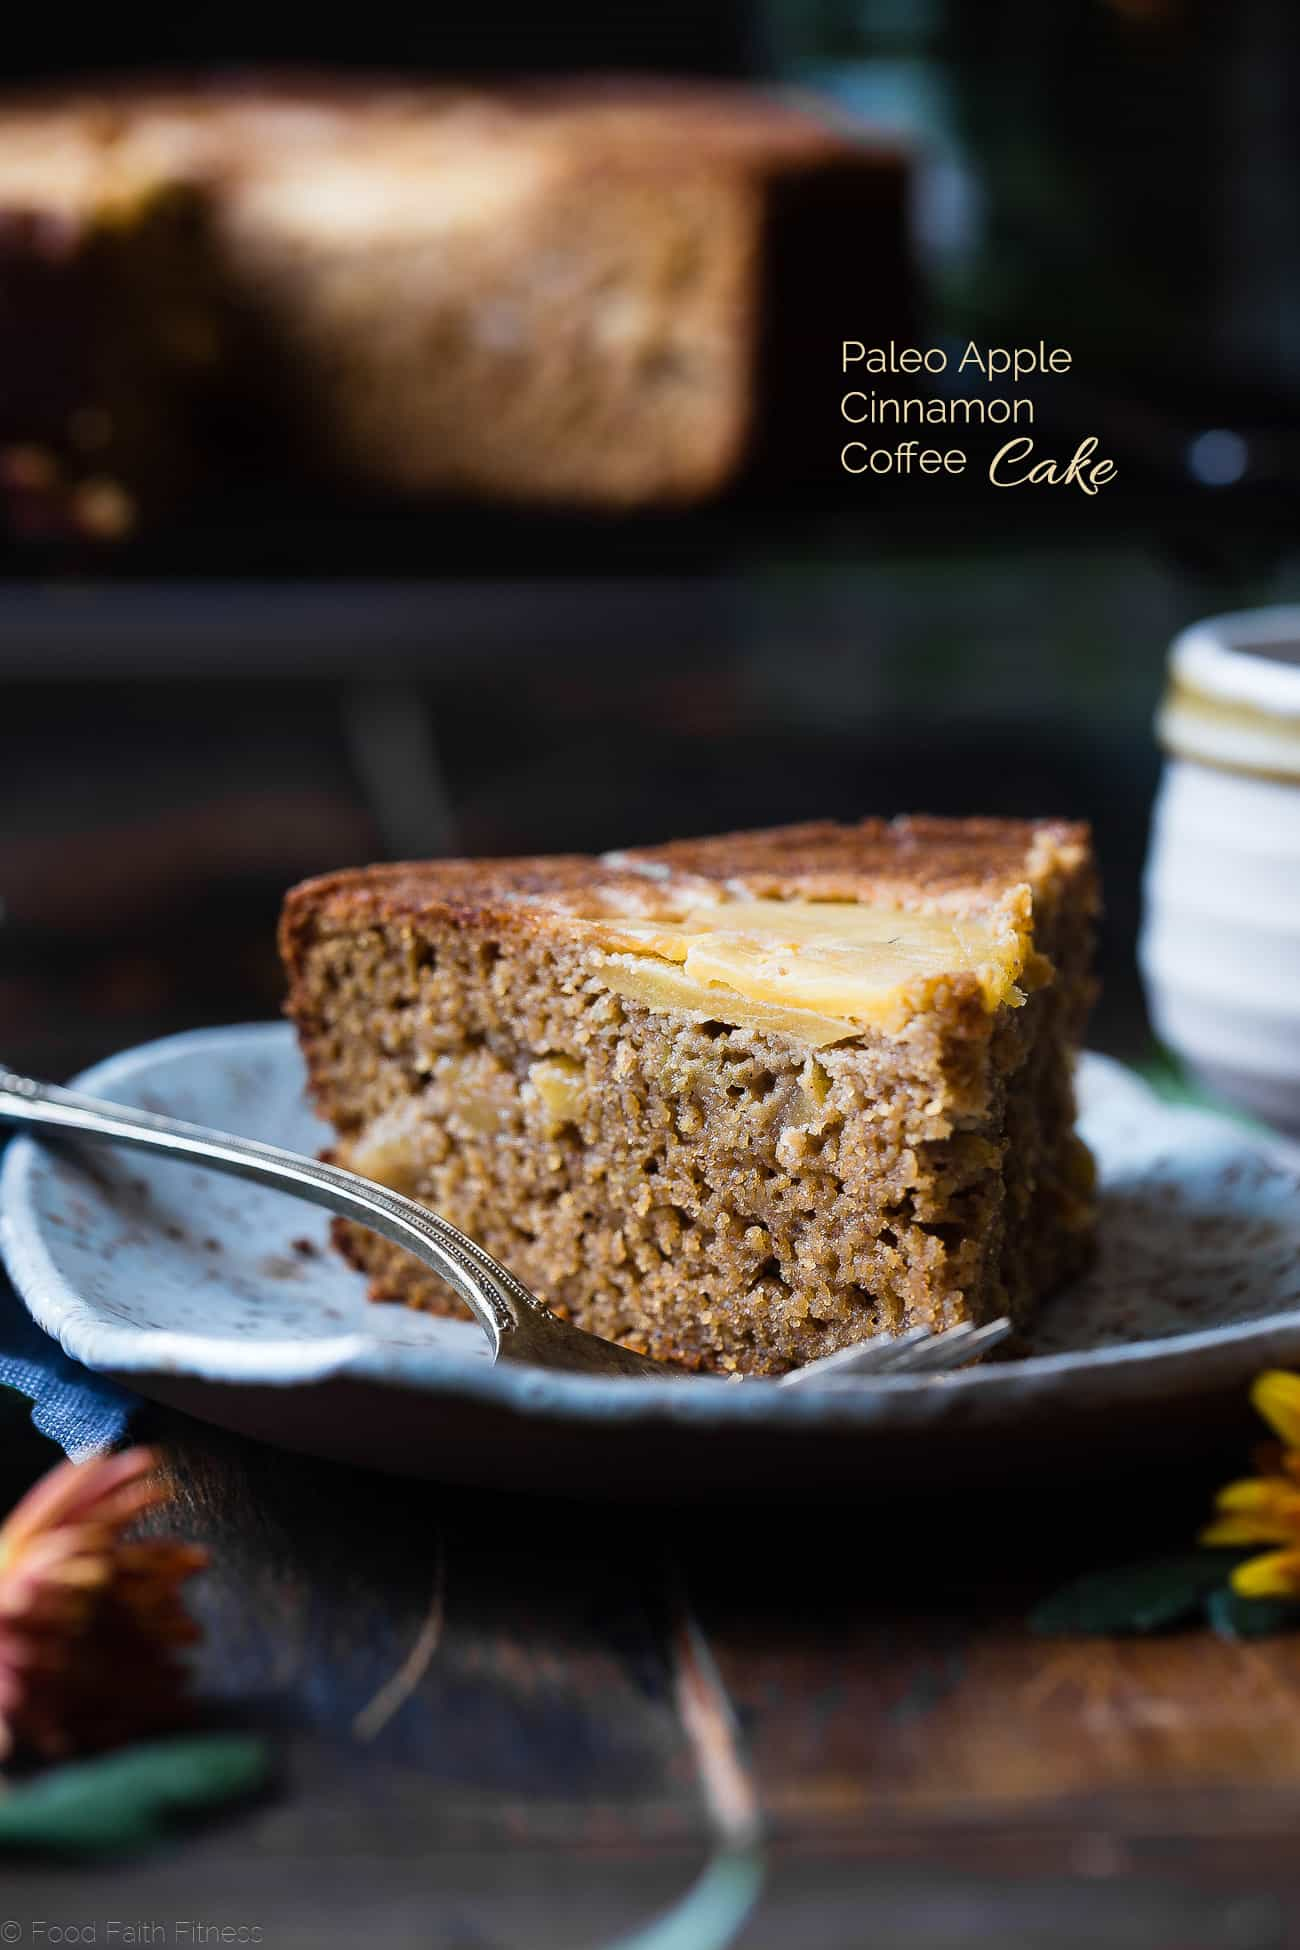 Gluten Free Apple Cinnamon Coffee Cake - This paleo apple gluten free coffee cake is made with almond flour, apples and naturally sweetened with coconut sugar. Its a healthy, paleo and freezer-friendly breakfast that you will never believe is butter and oil free! | Foodfaithfitness.com | @FoodFaithFit